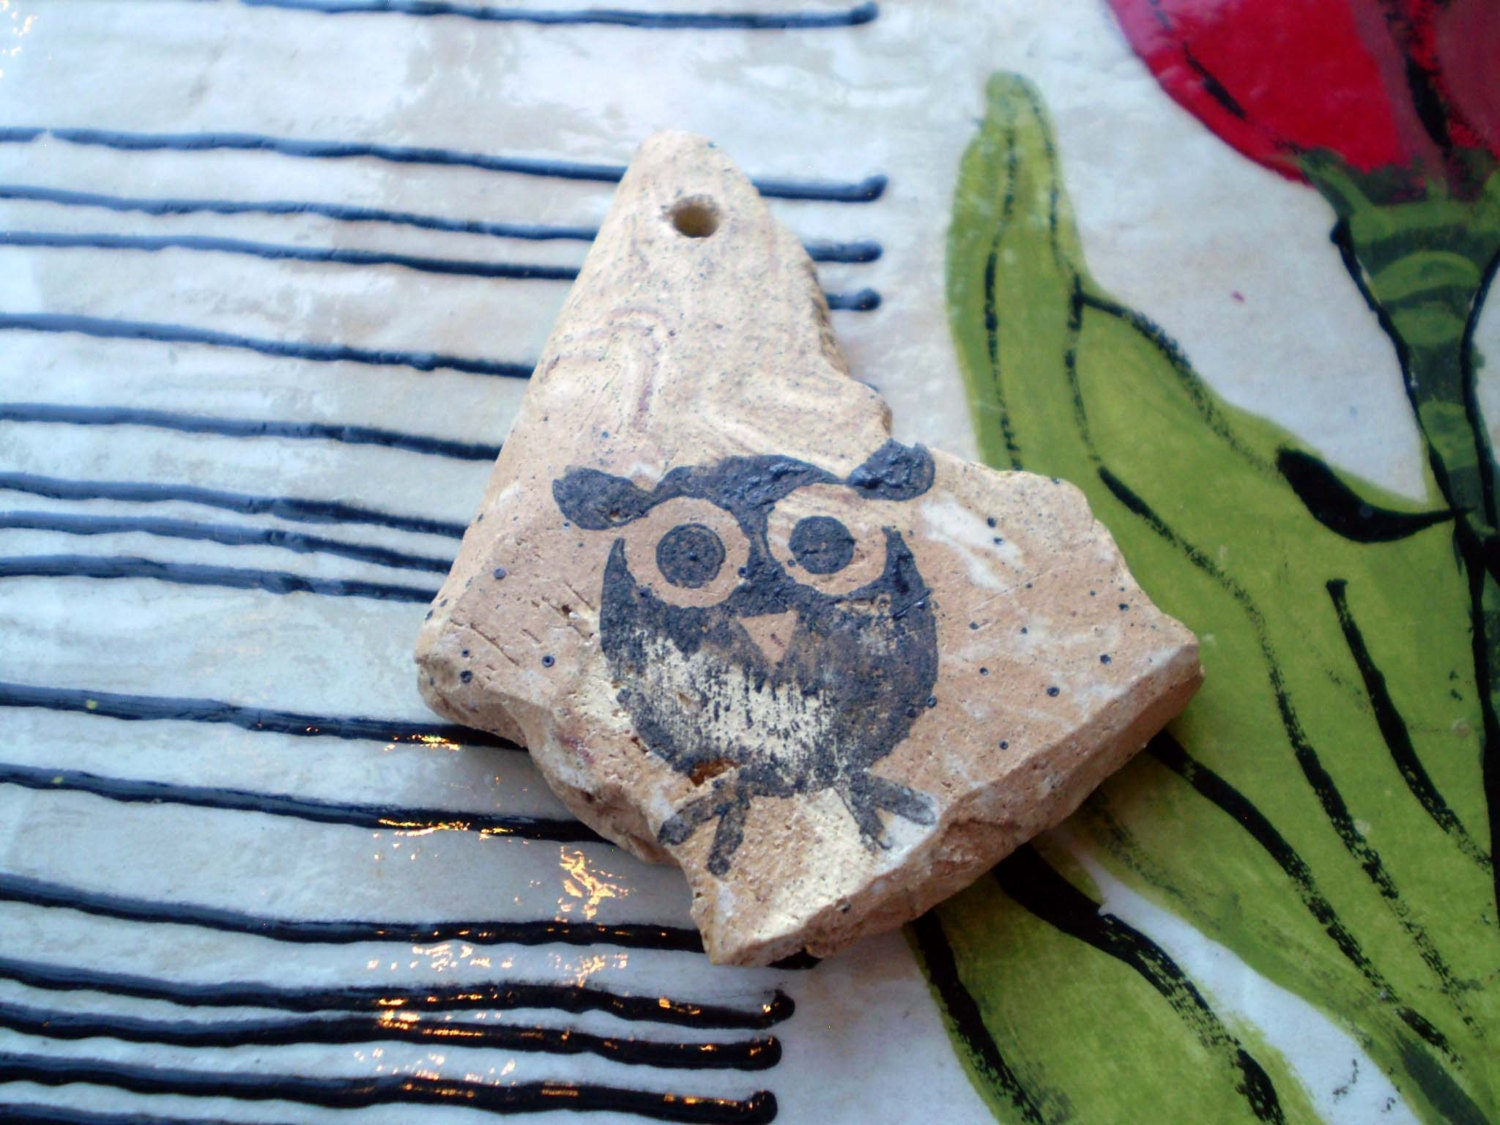 Owl Ceramic Focal Bead, Marbleized Bead, Handmade Jewelry Supply - spinningstarstudio